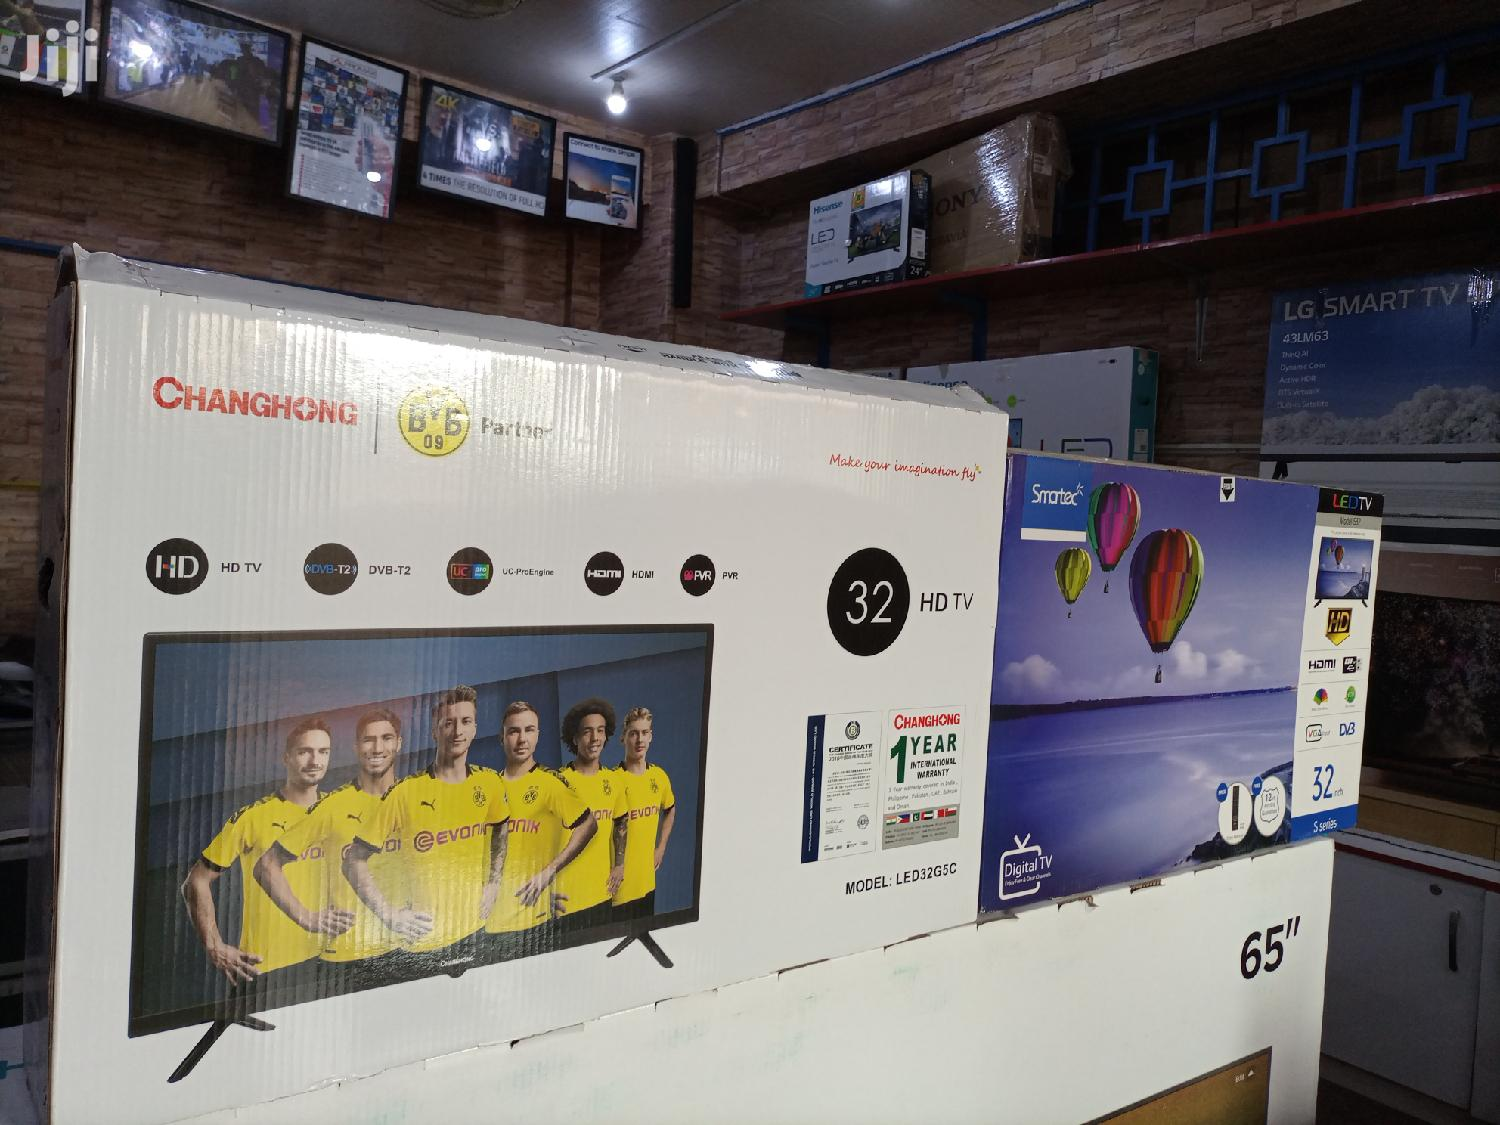 Changhong 32 Inches LED Digital Flat Screen TV | TV & DVD Equipment for sale in Kampala, Central Region, Uganda